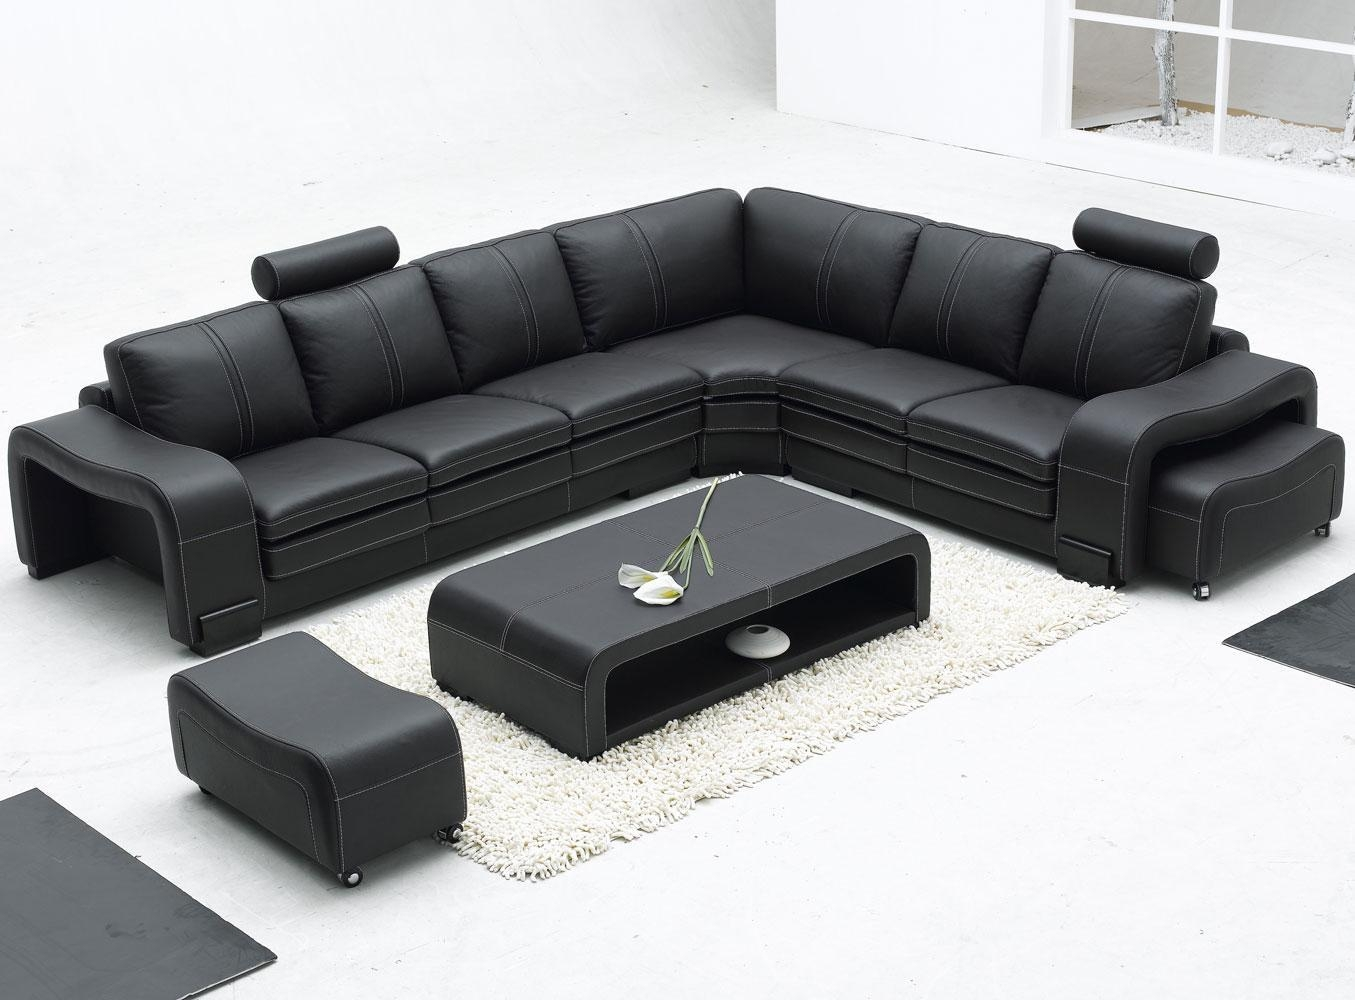 Modern Black Leather Sectional Sofa – S3Net – Sectional Sofas Sale With Black Leather Sectional Sleeper Sofas (Image 14 of 21)